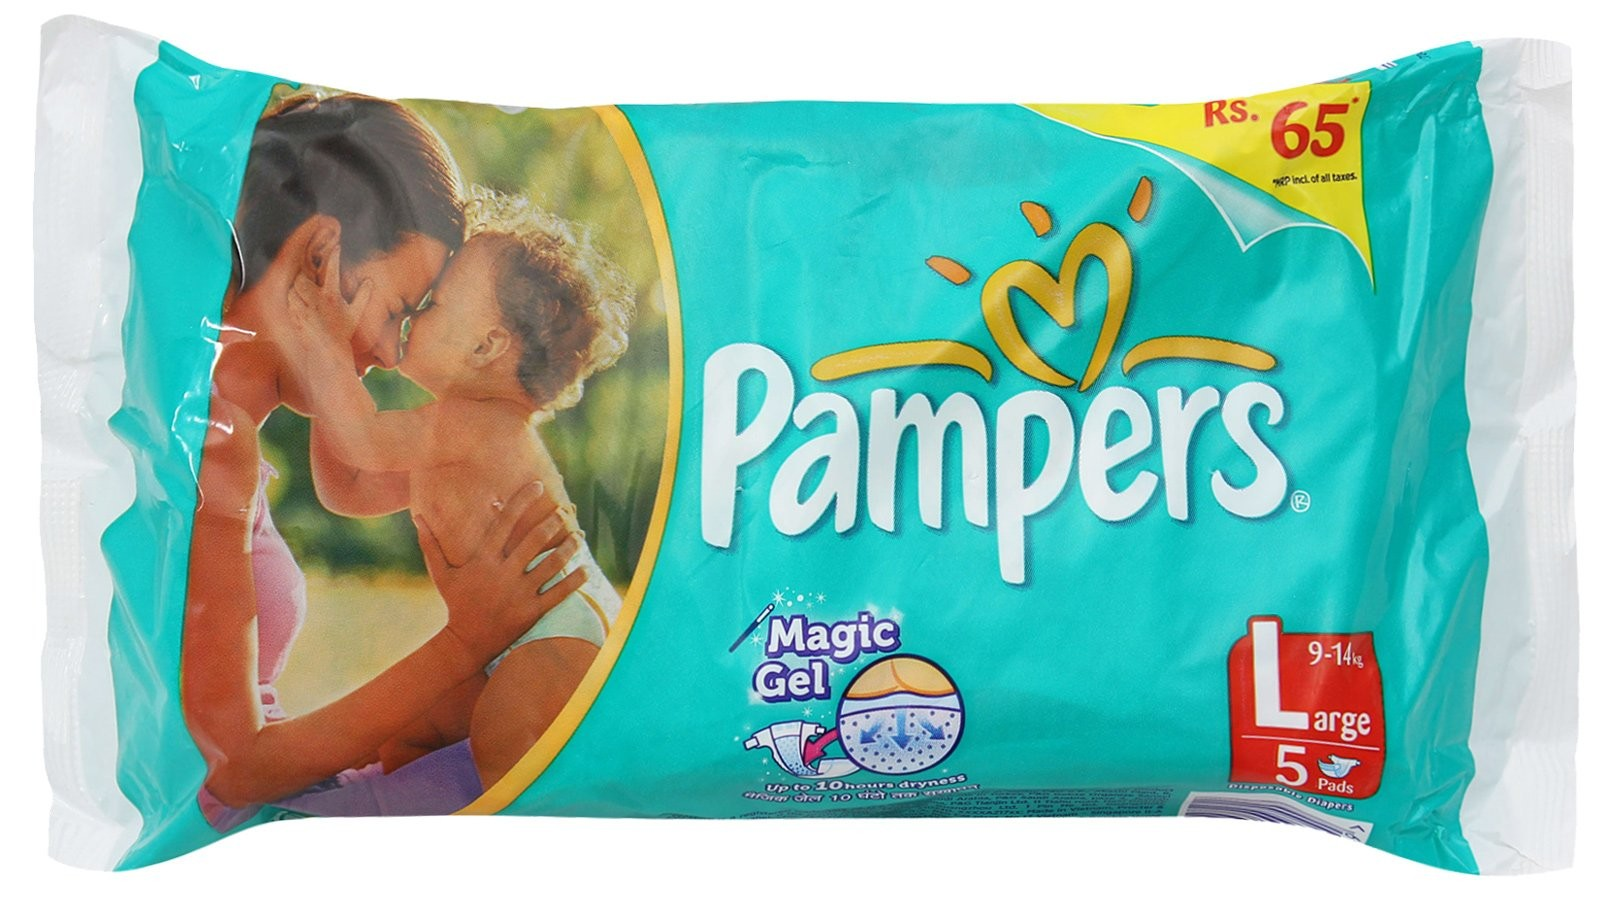 Pampers Disposable Diapers - Large (9-14 kgs)